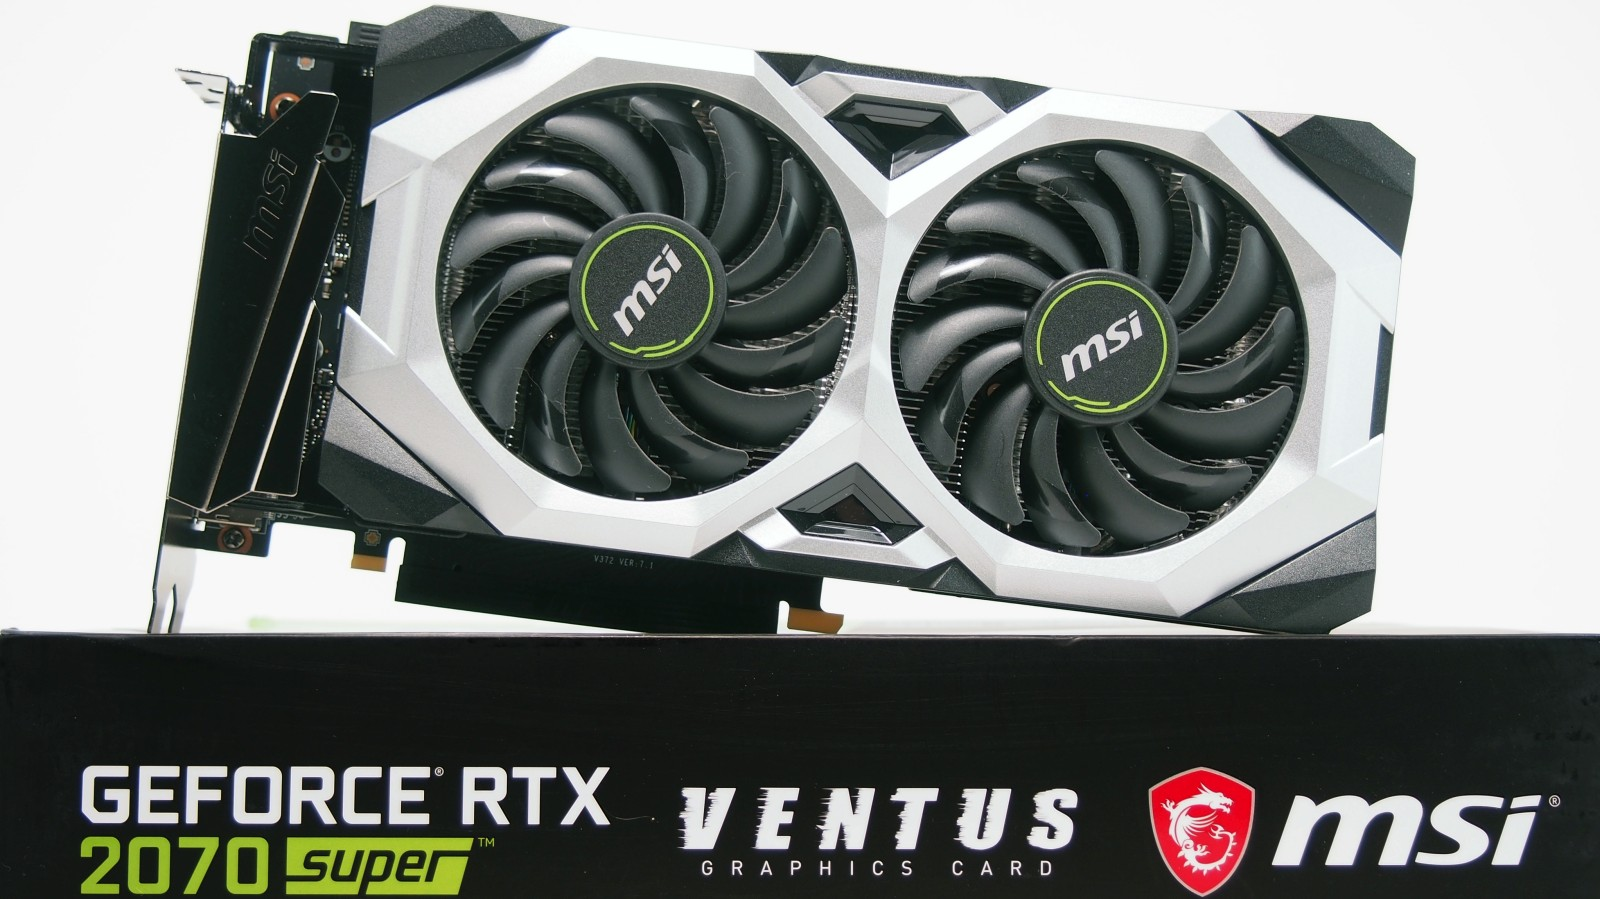 Обзор и тест видеокарты MSI GeForce RTX 2070 Super Ventus OC